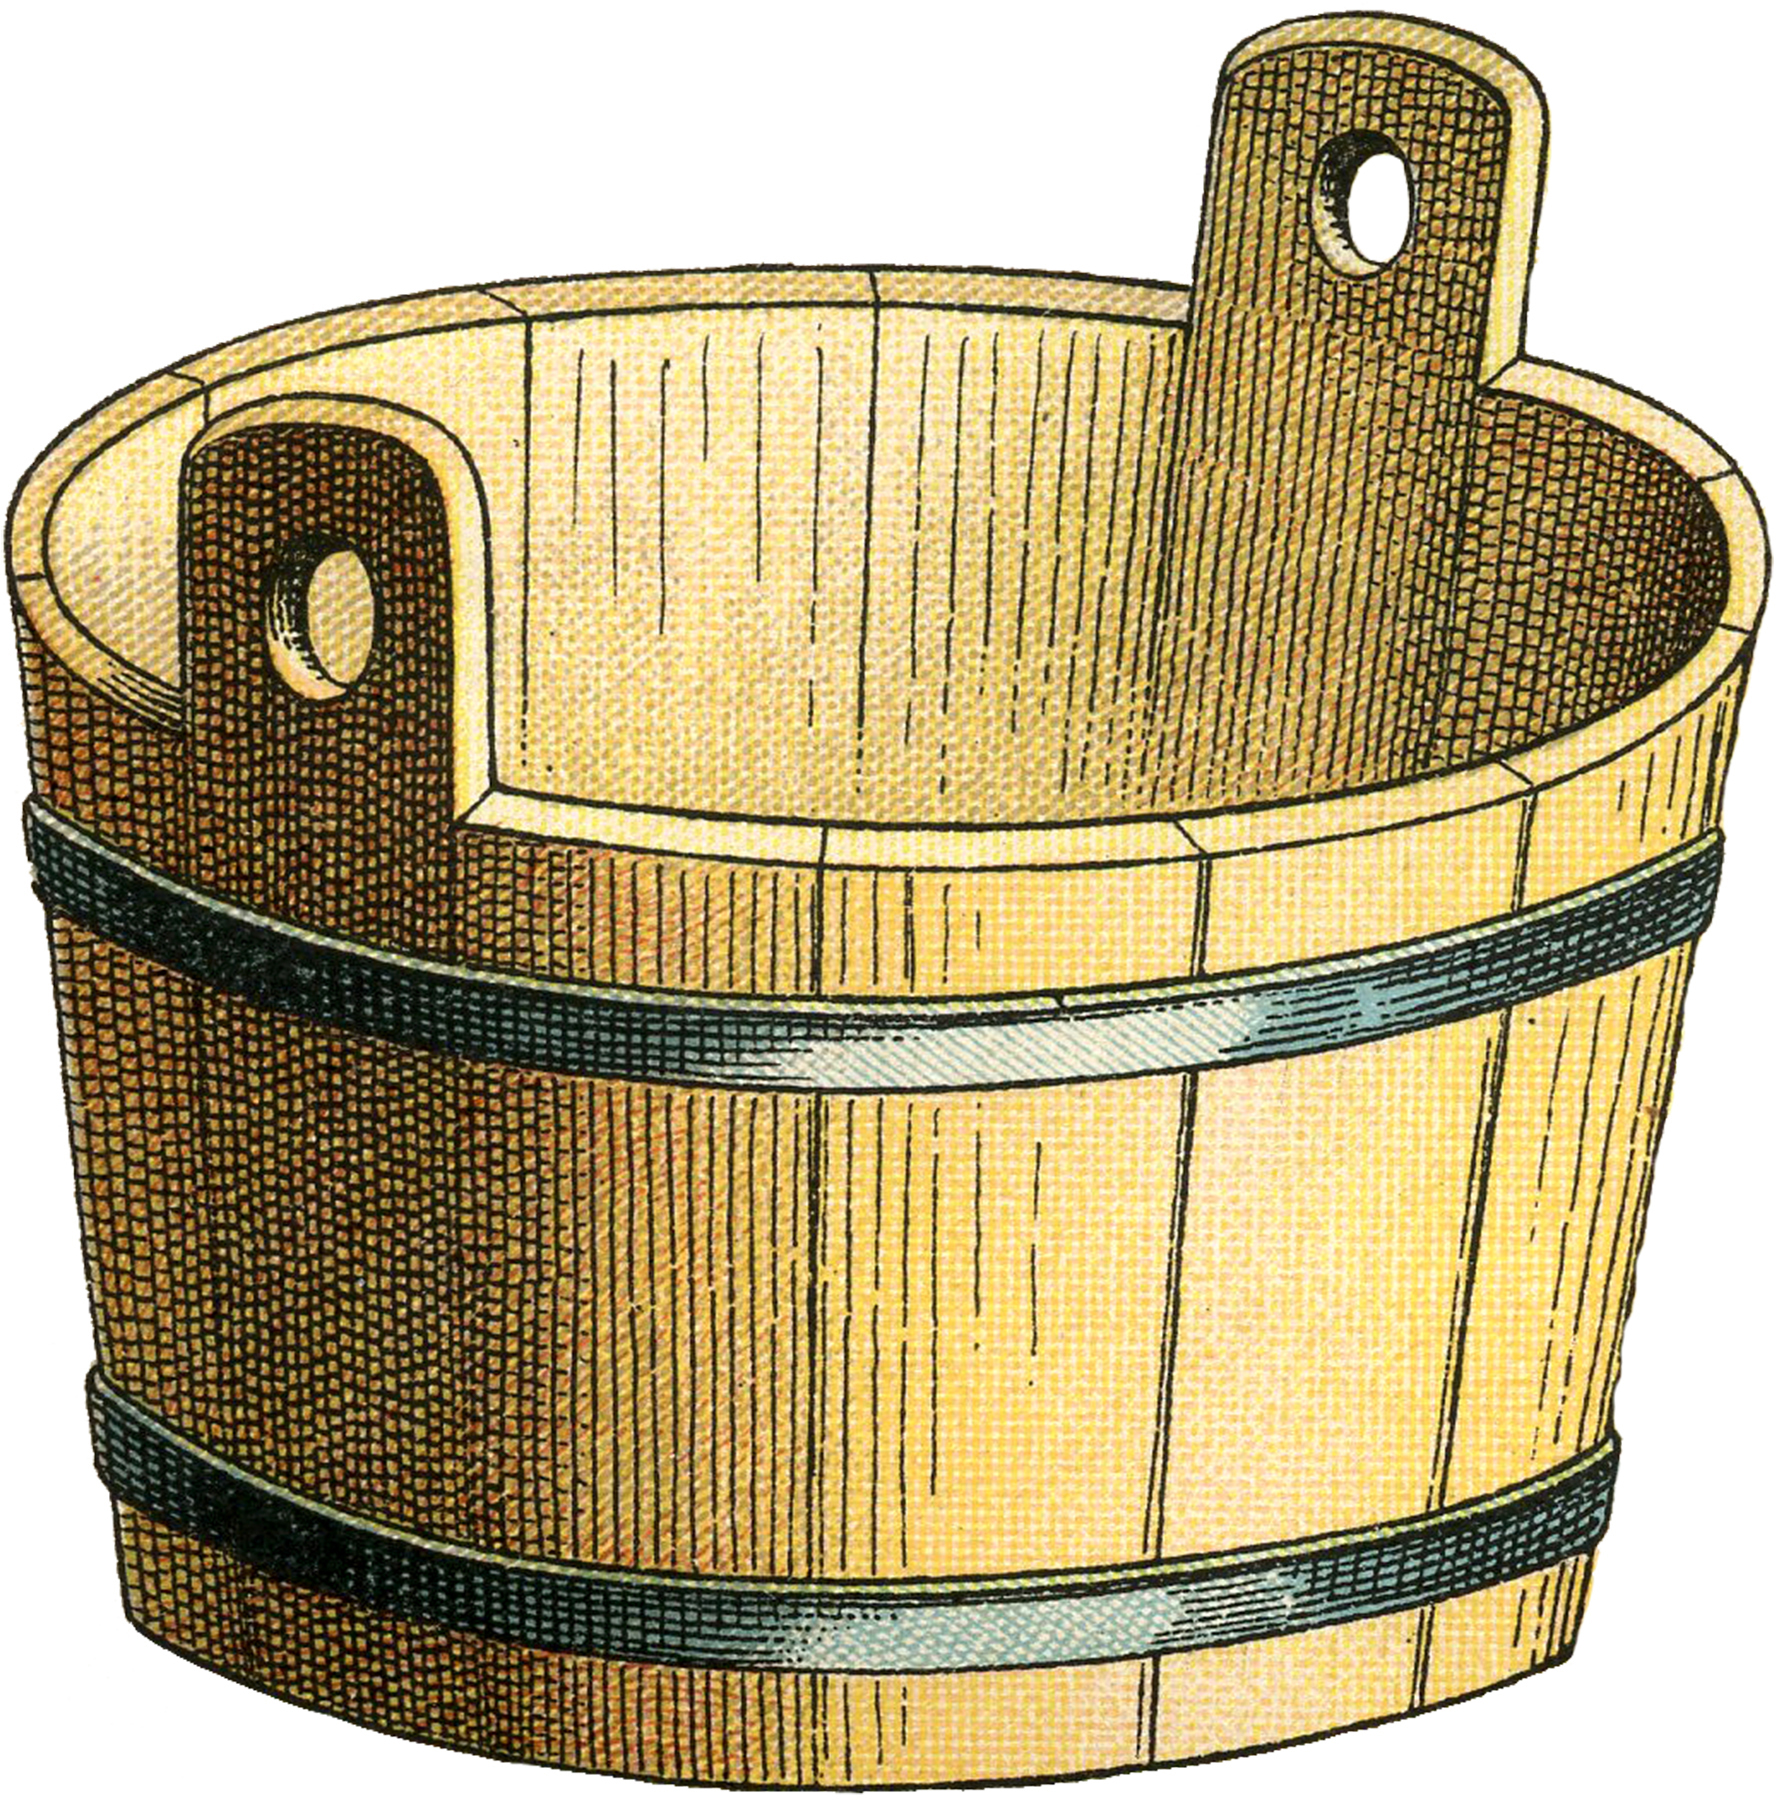 Bucket clipart wooden bucket. Old image the graphics